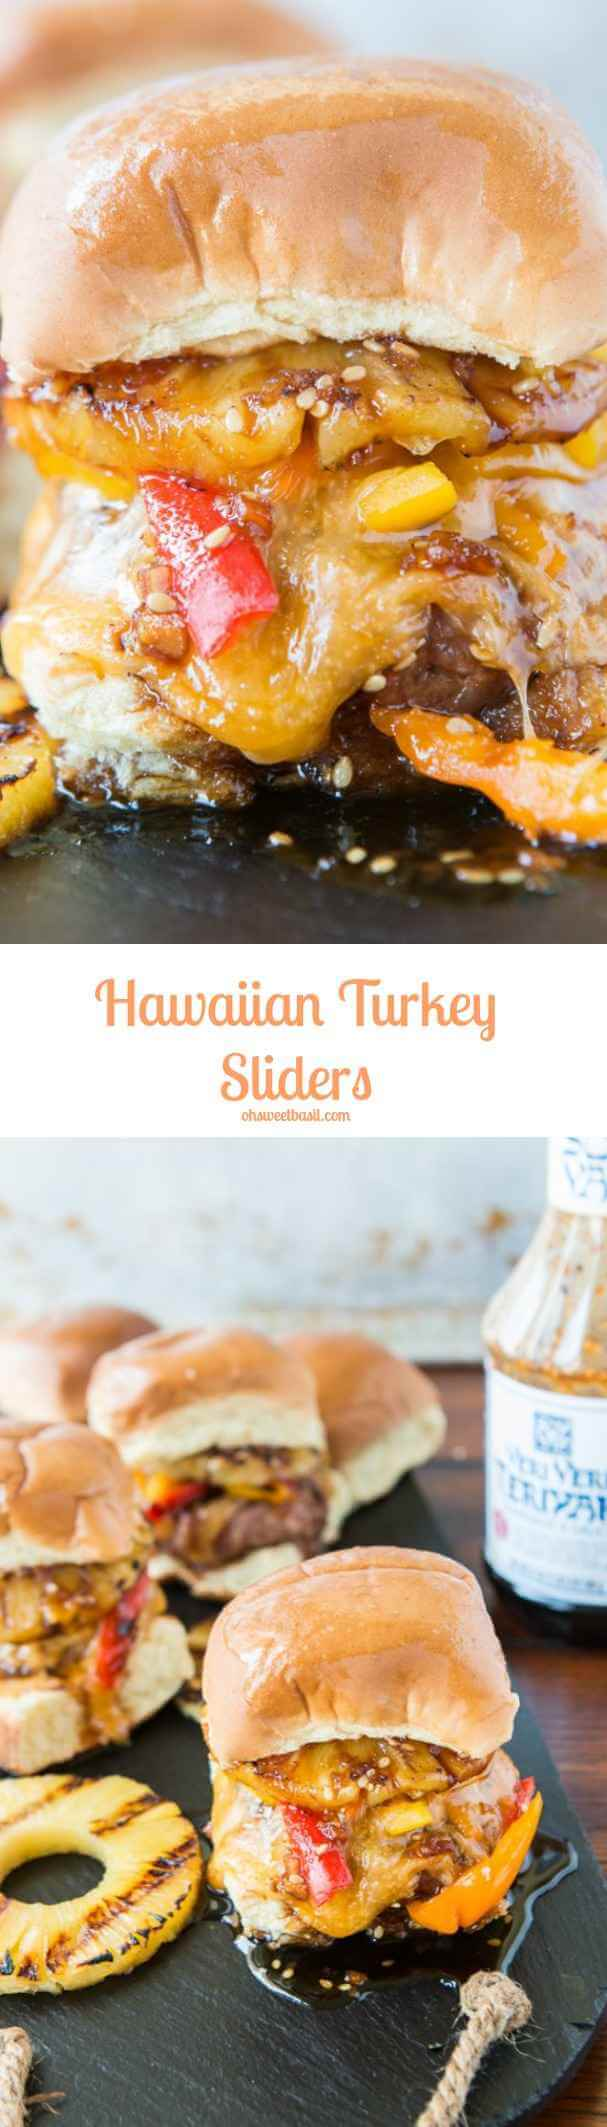 Everyone's favorite Hawaiian Turkey Burger Sliders with pineaple and teriyaki! ohsweetbasil.com